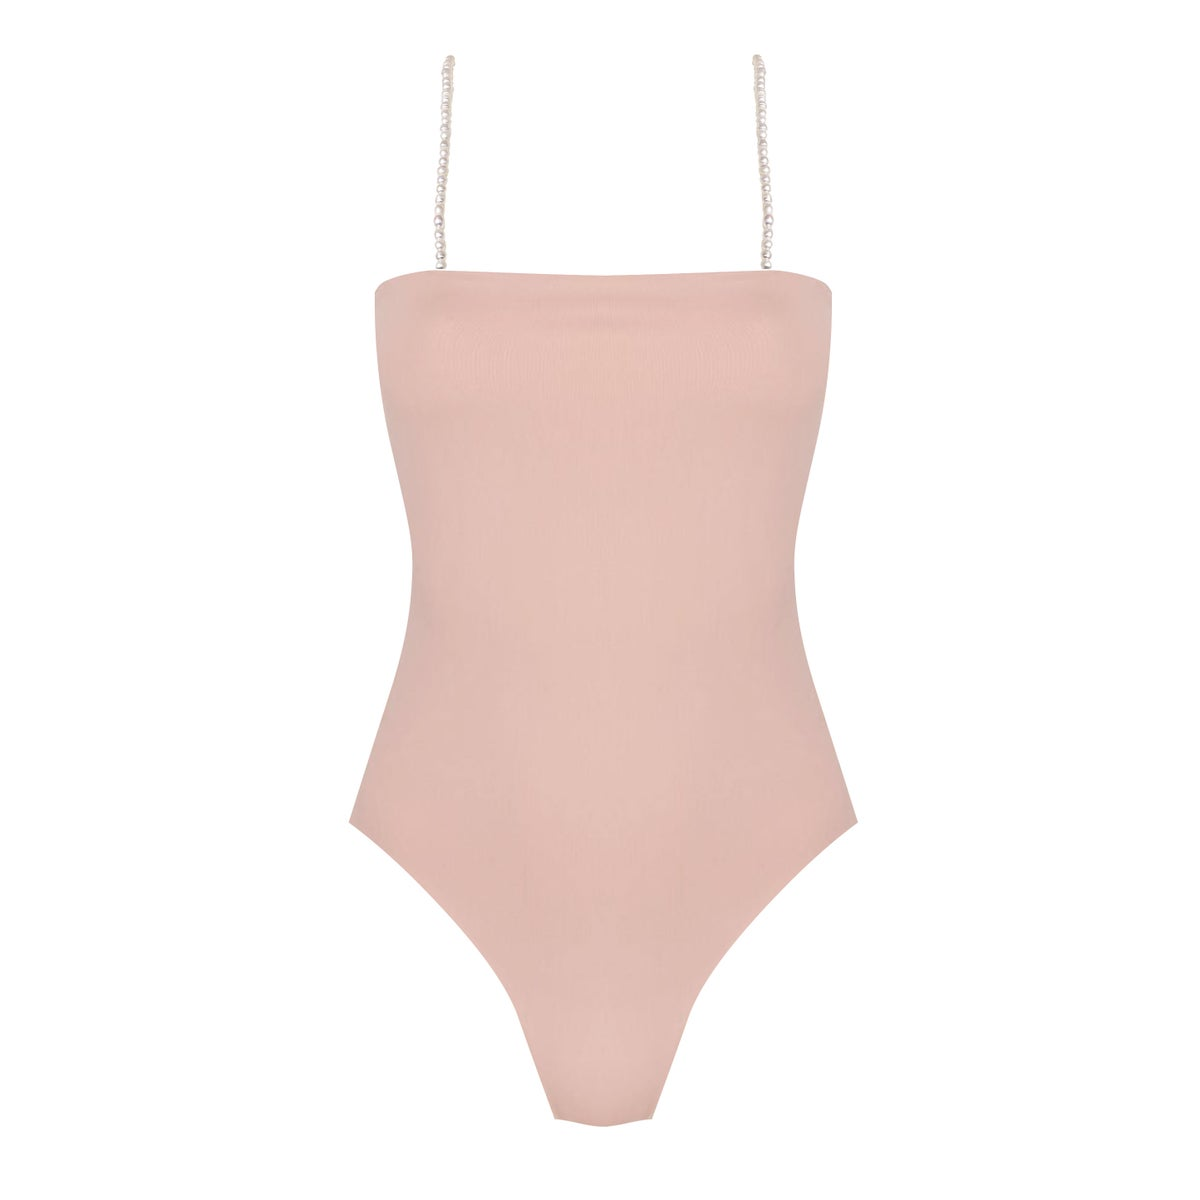 Image of THE CLASSY NUDE PEARLS ONEPIECE